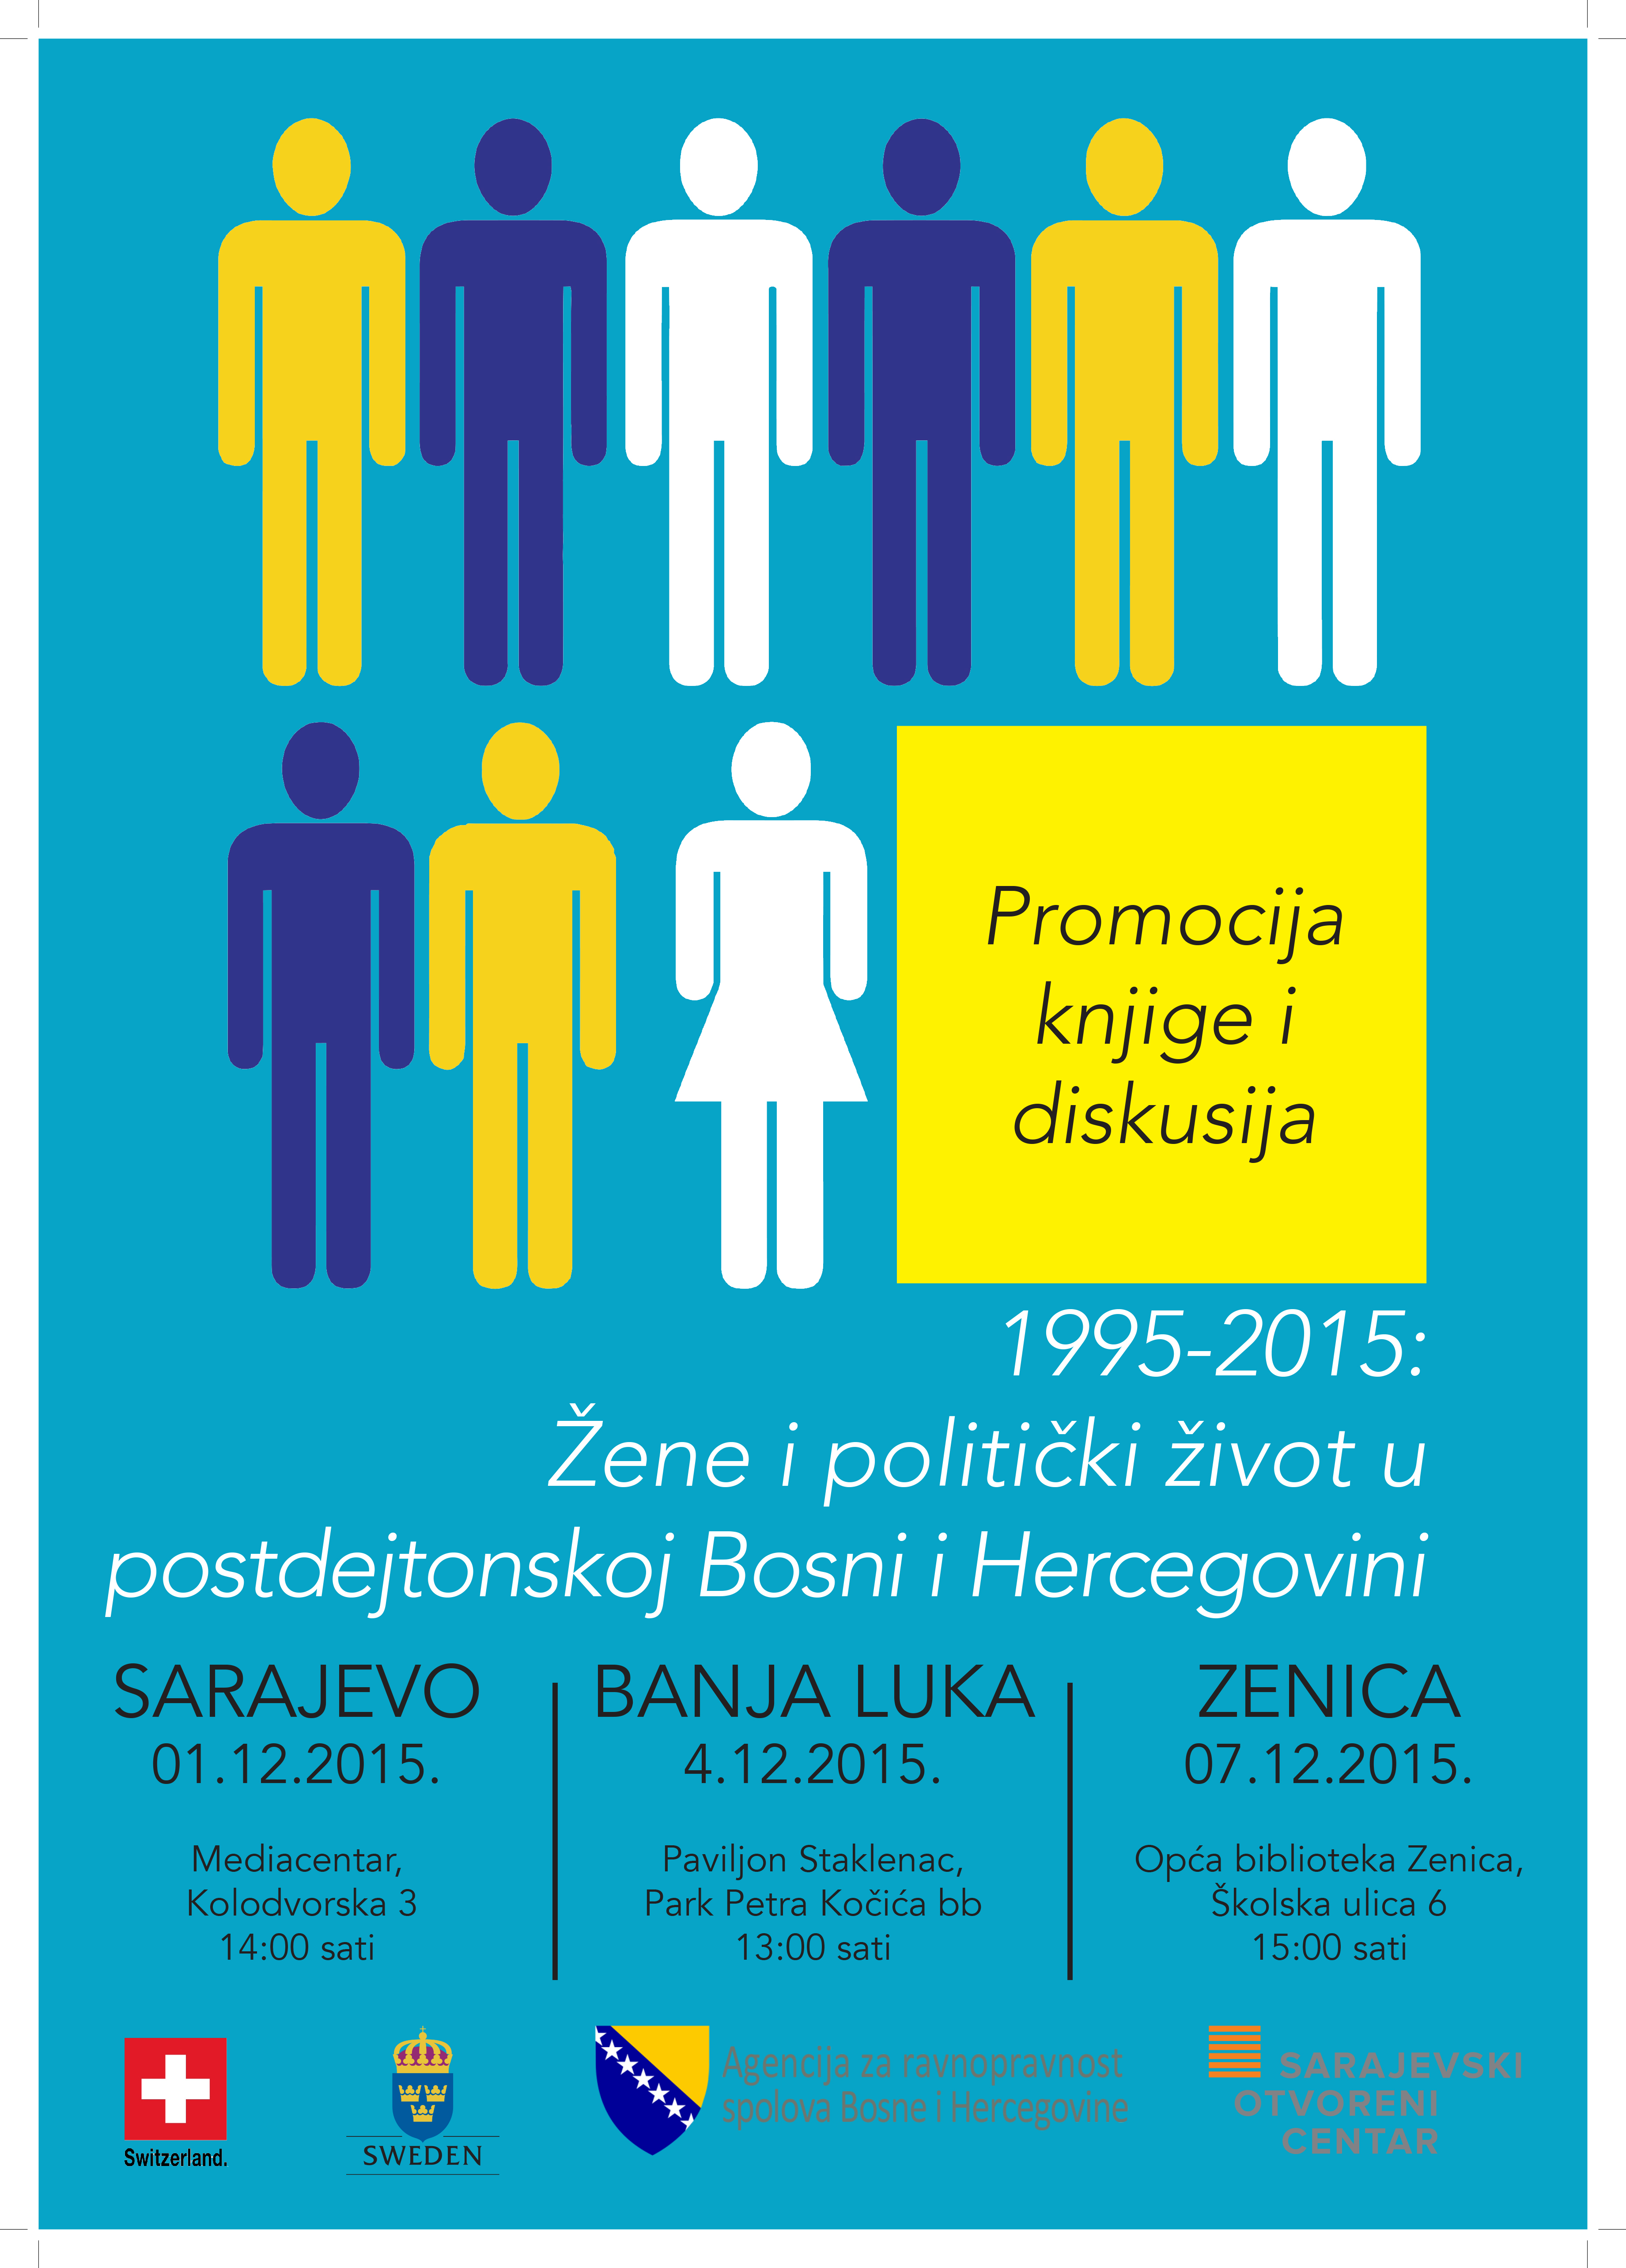 1995-2015 Poster